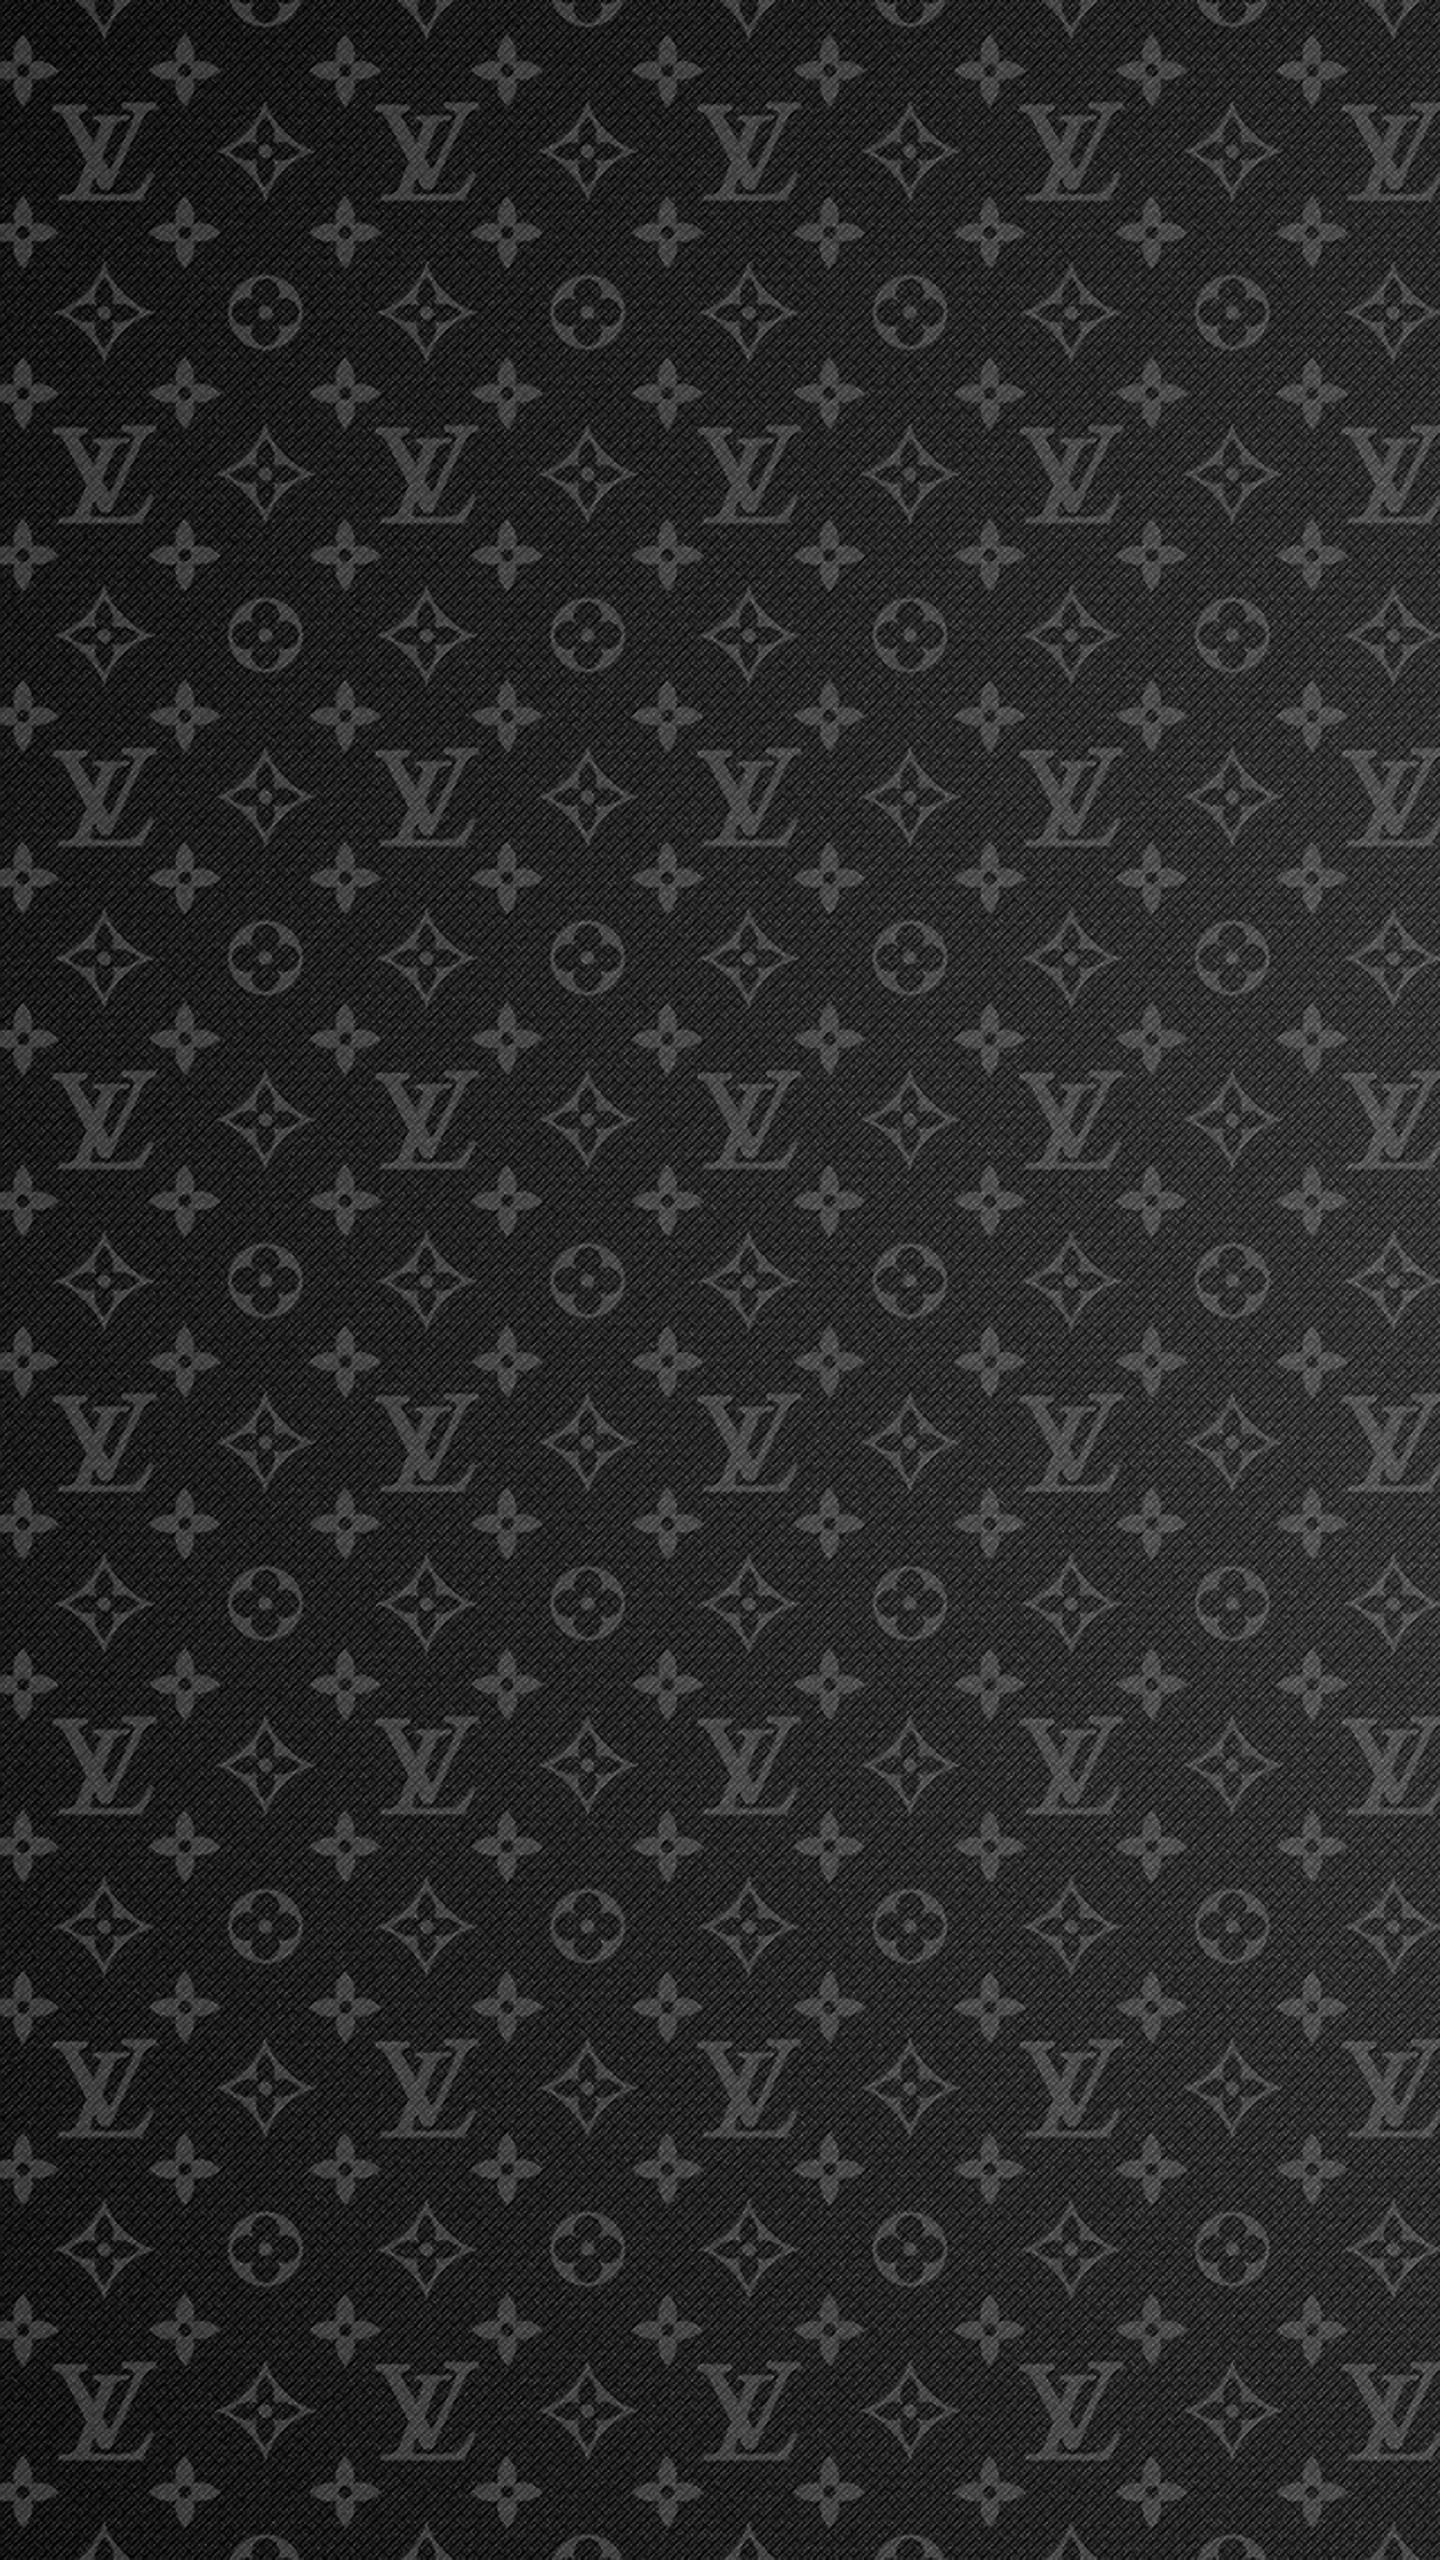 Lv wallpaper 72 images - Hd supreme iphone wallpaper ...